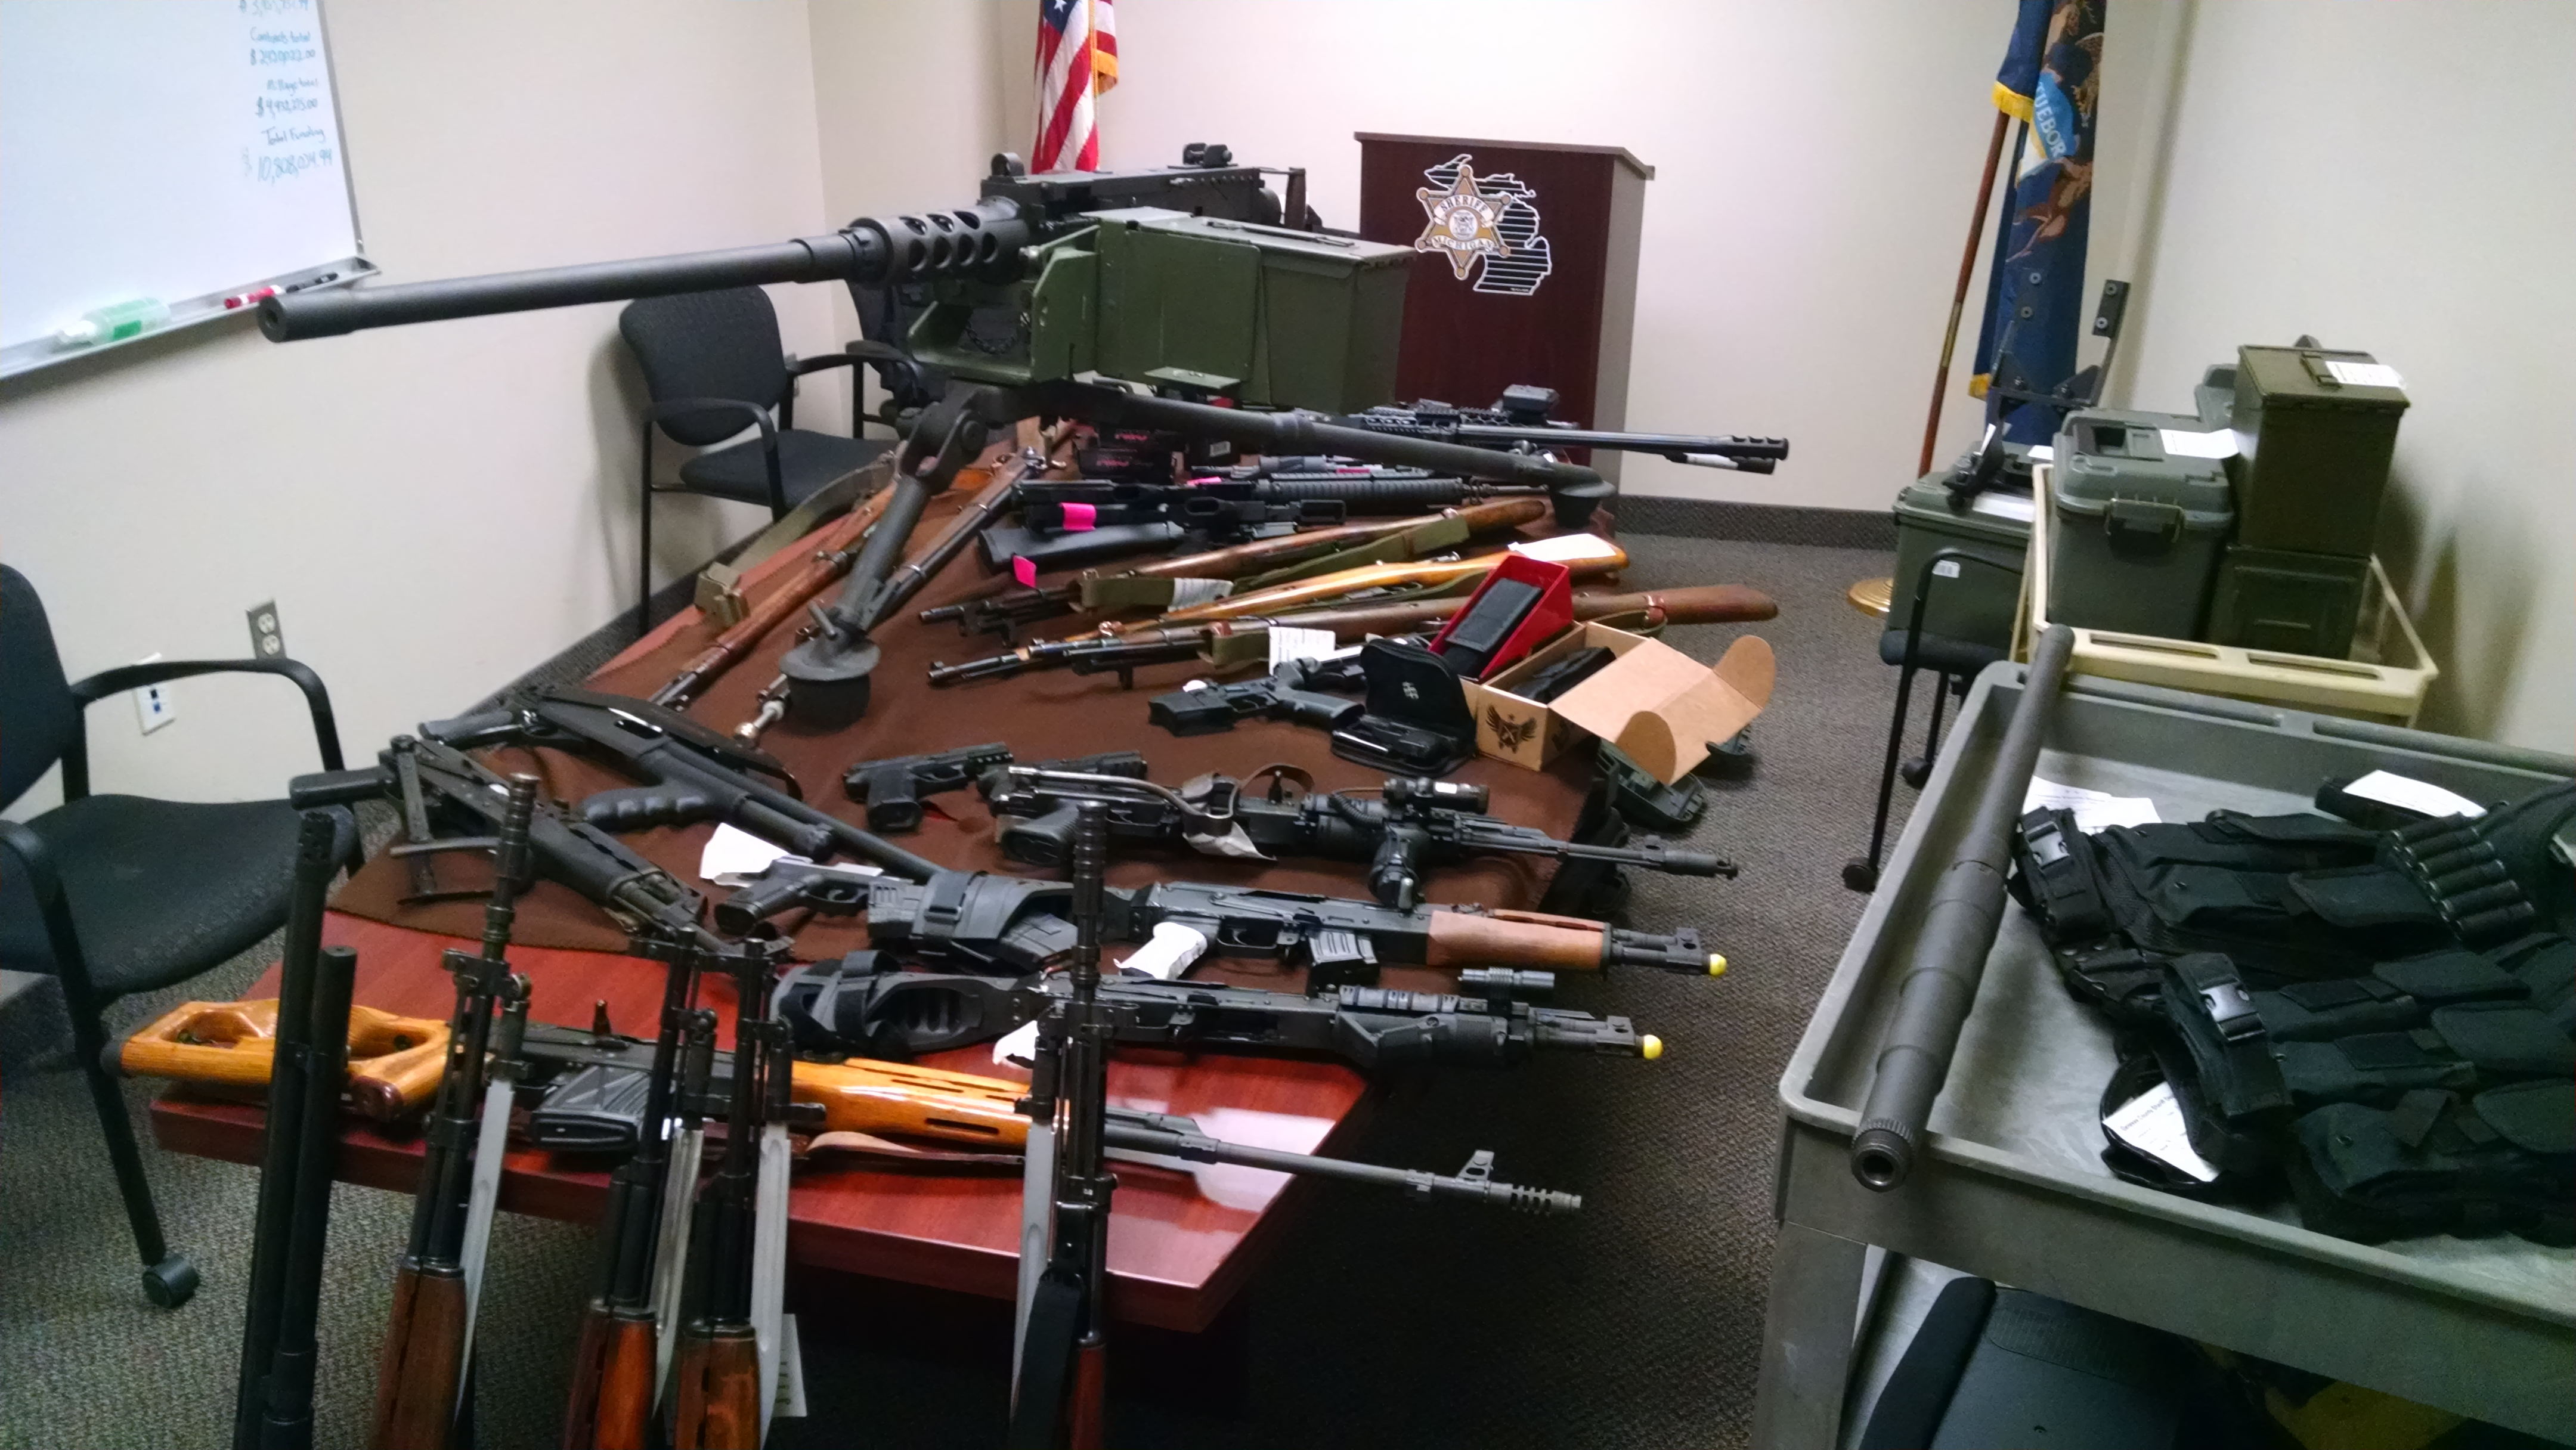 Weapons confiscated from the home of Steven and Sarah Nicks (credit: Genesee County Sheriff's Office)